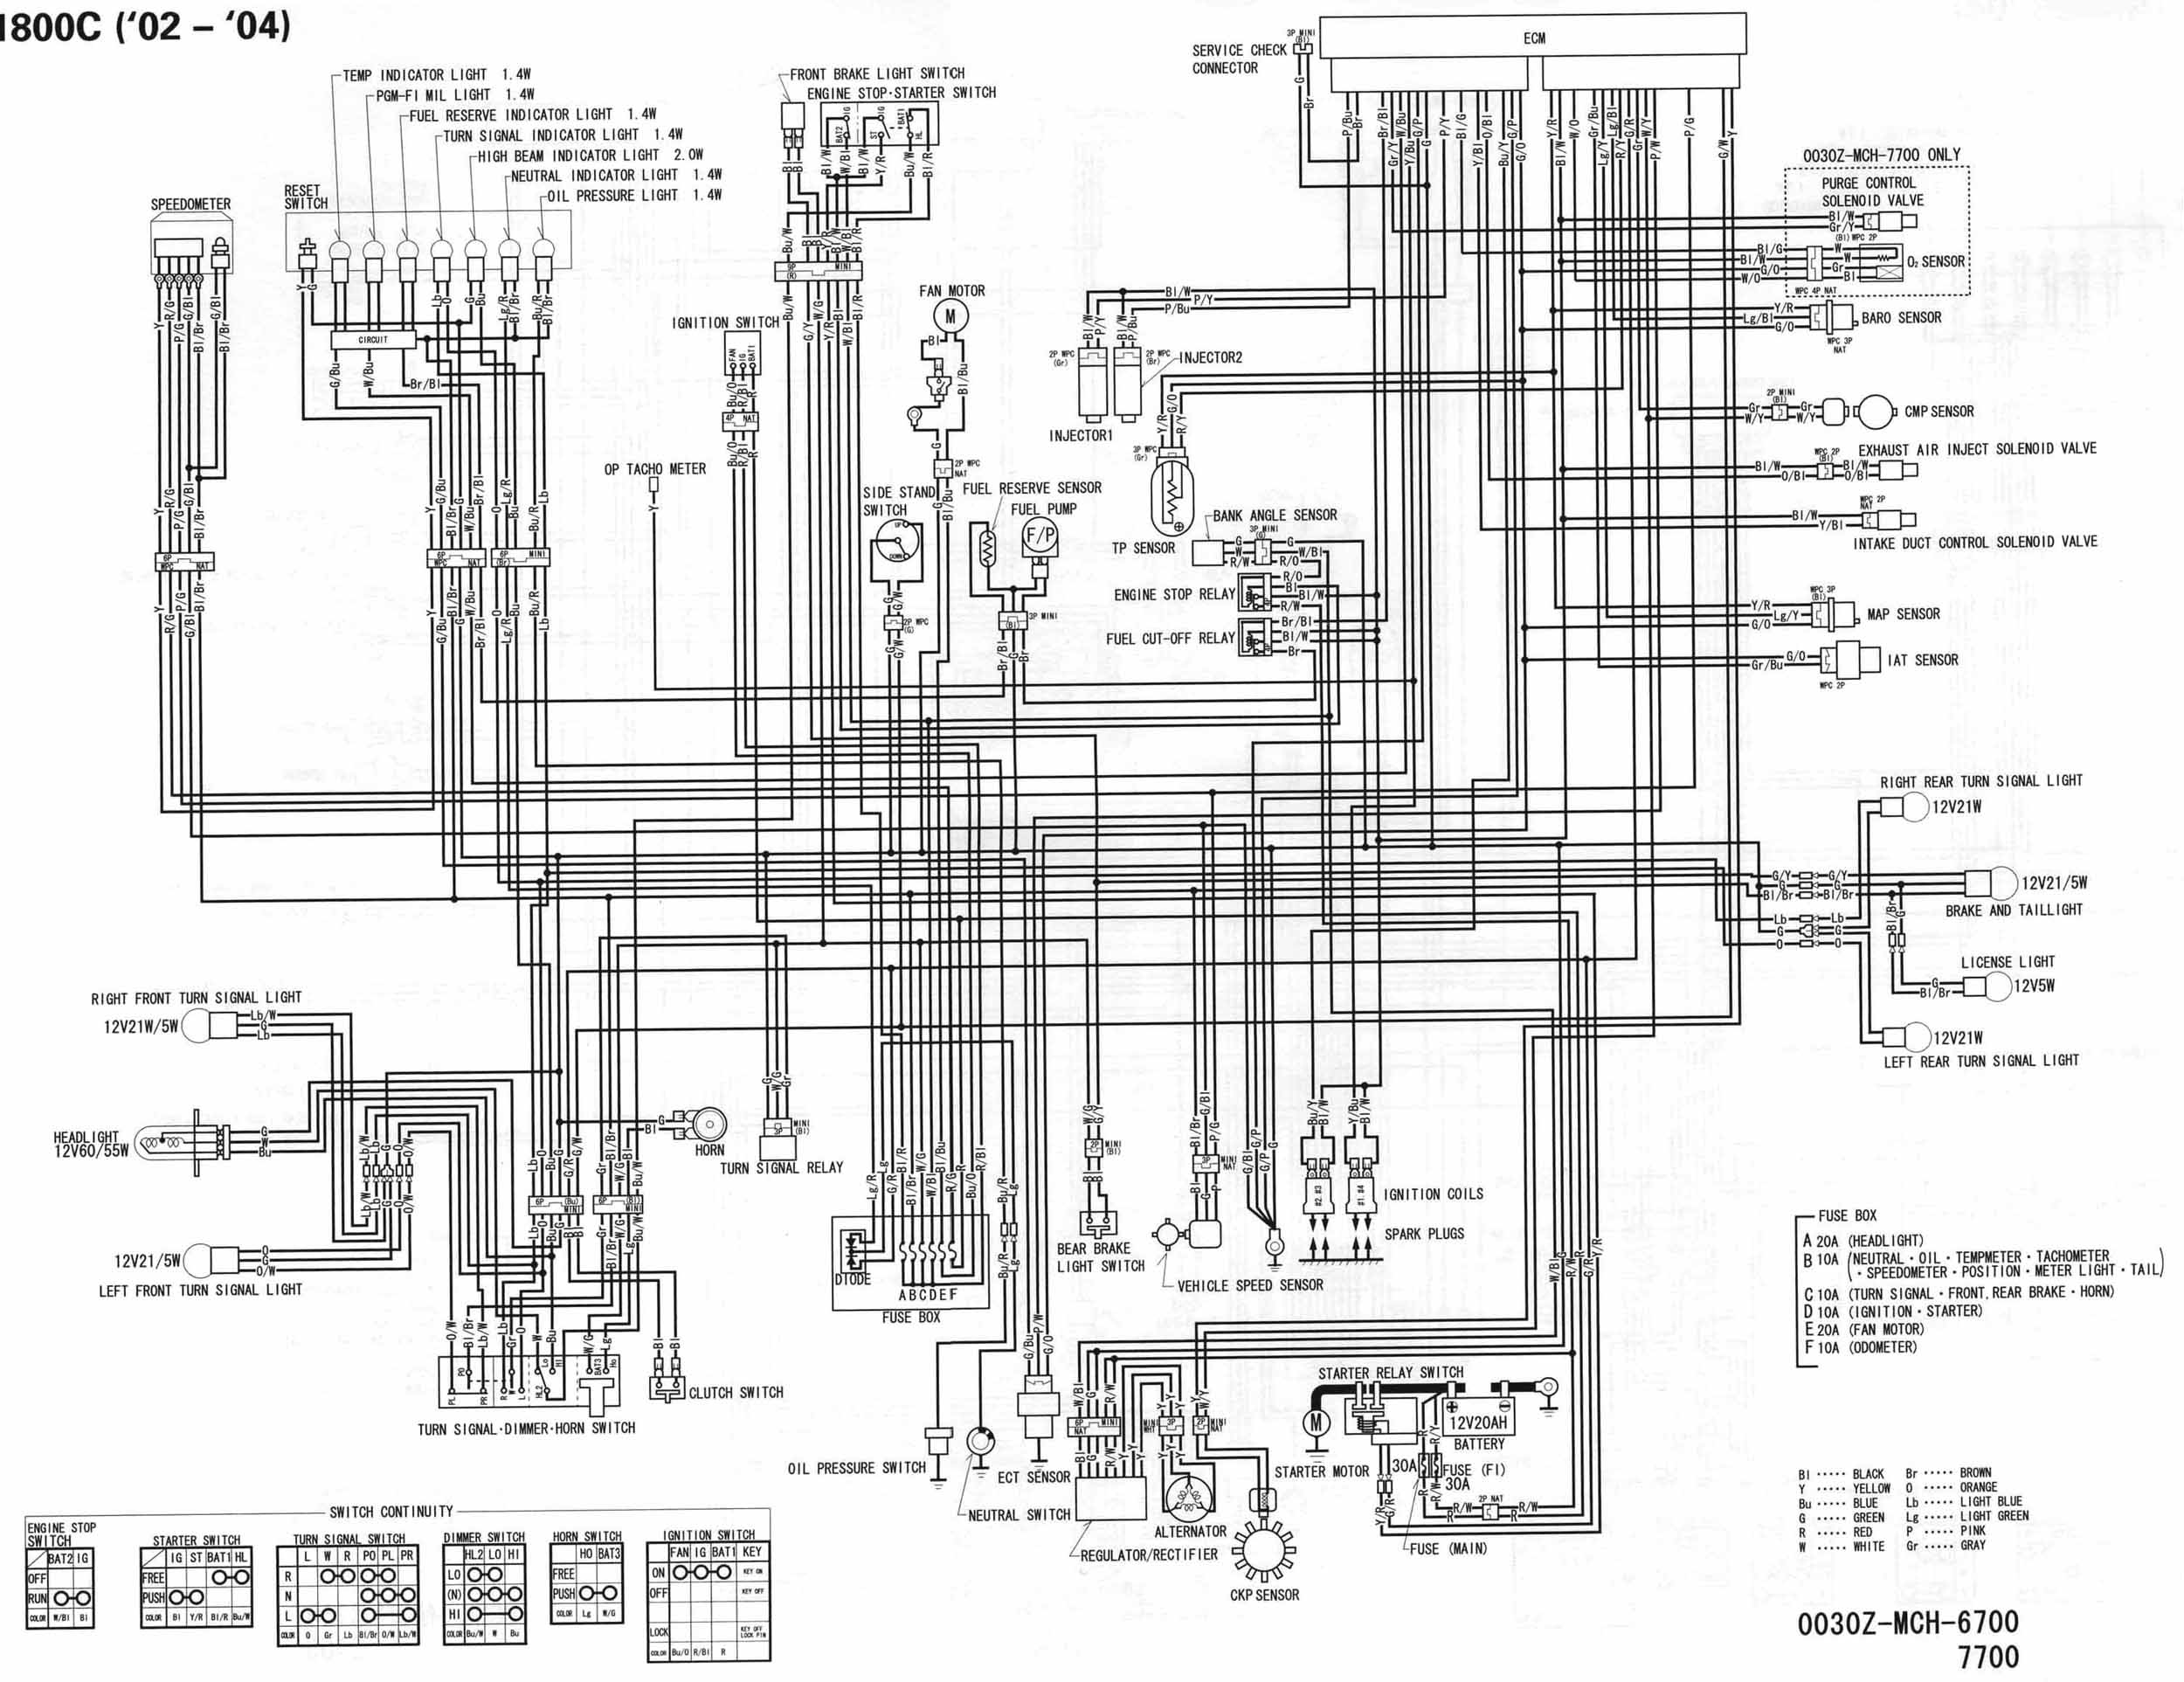 Electrical Schematic Review Diy Wiring Diagrams 2009 Big Dog Motorcycle Diagram Enthusiasts Wire Schematics Bareass Choppers Tech Pages Rh Bareasschoppers Com Basic